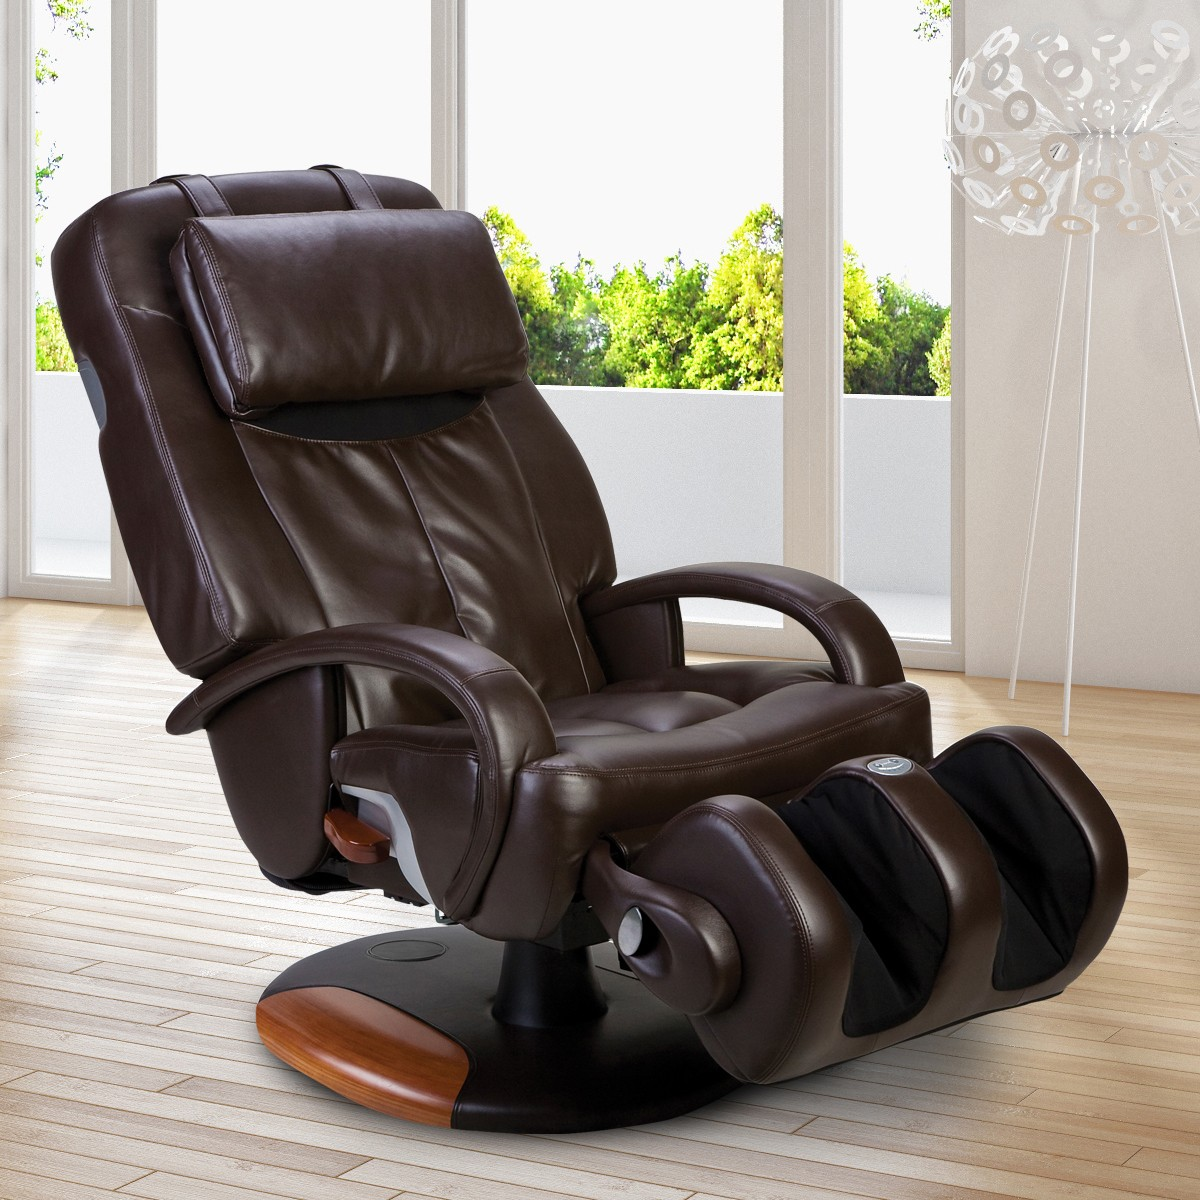 Relax the Back Massage Chair